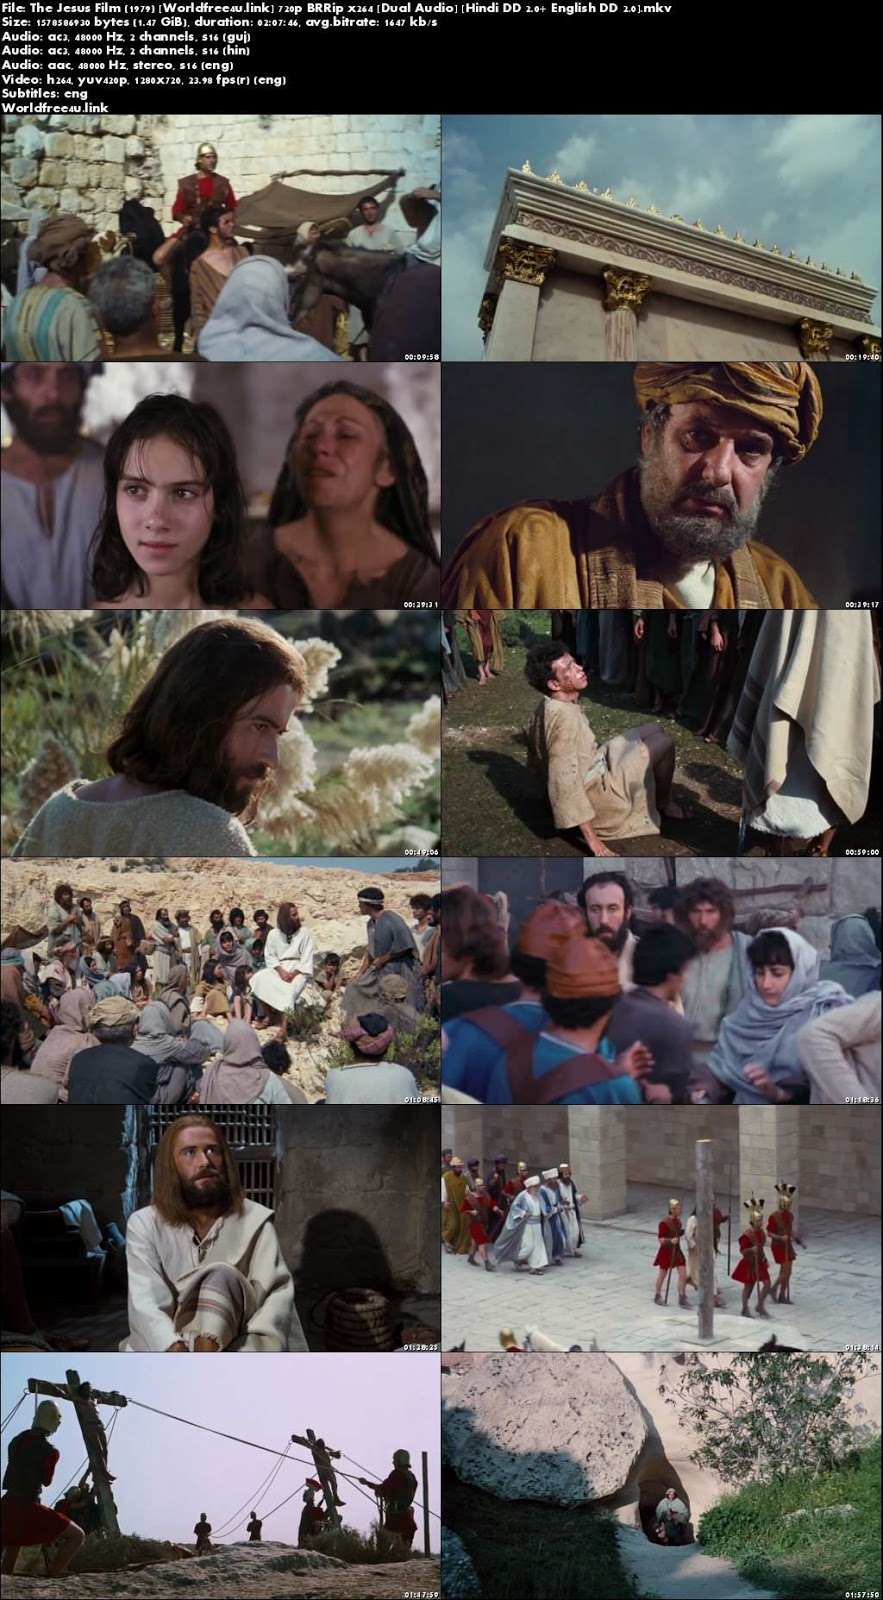 Screen Shoot of The Jesus Film 1979 BRRip 720p Dual Audio Hindi English